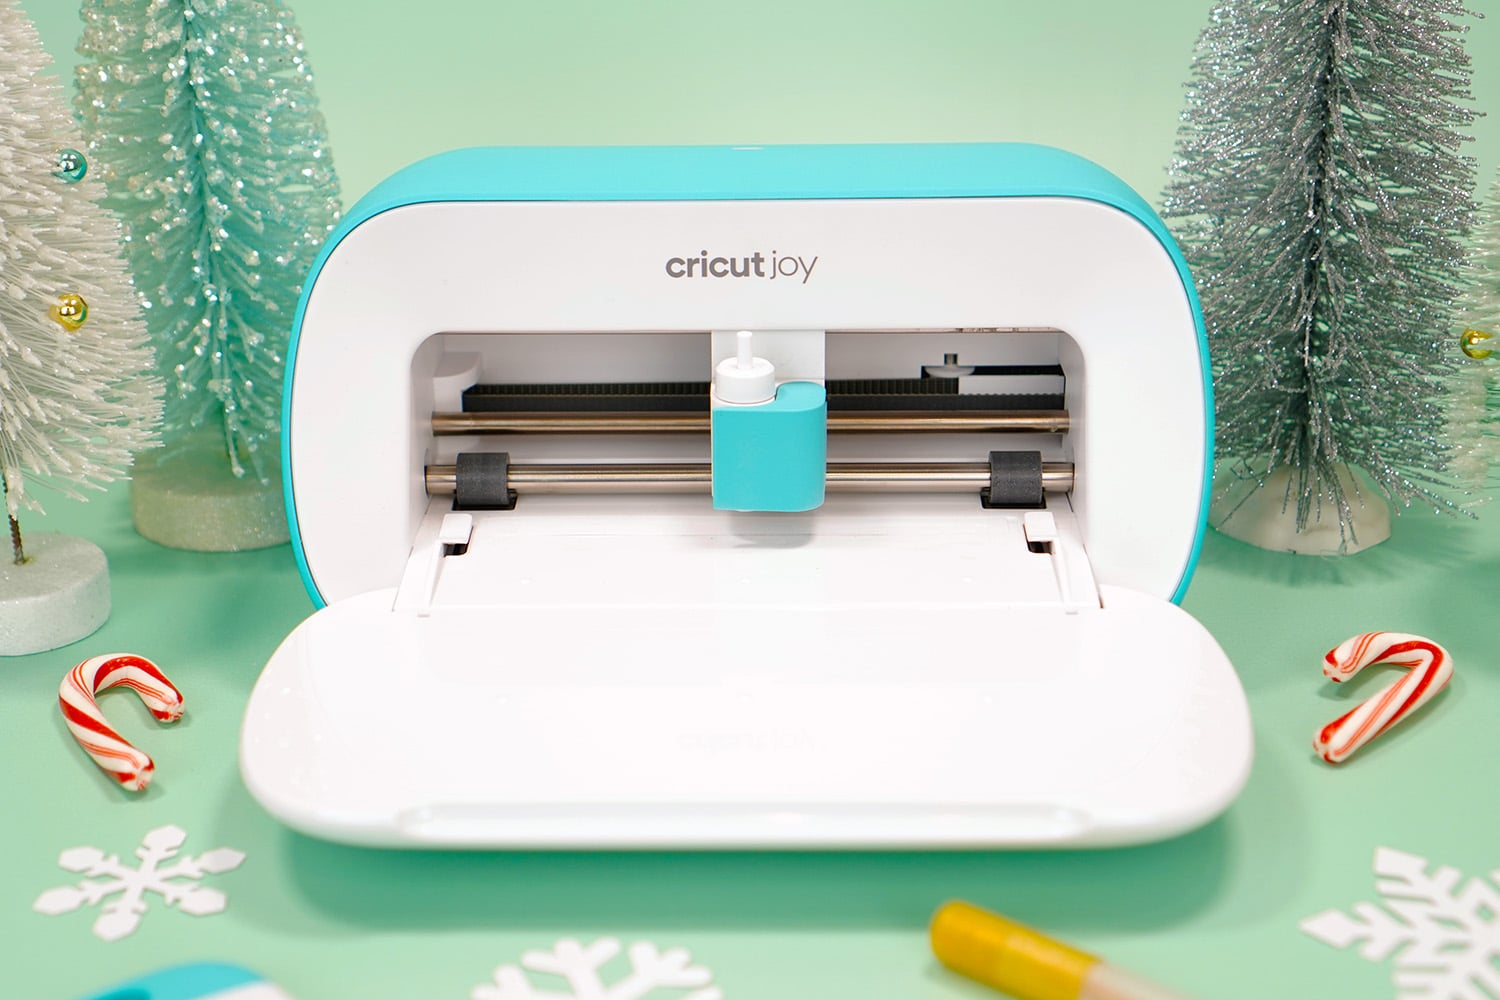 Cricut Joy machine with bottle brush trees, paper snowflakes, and candy canes on mint green background